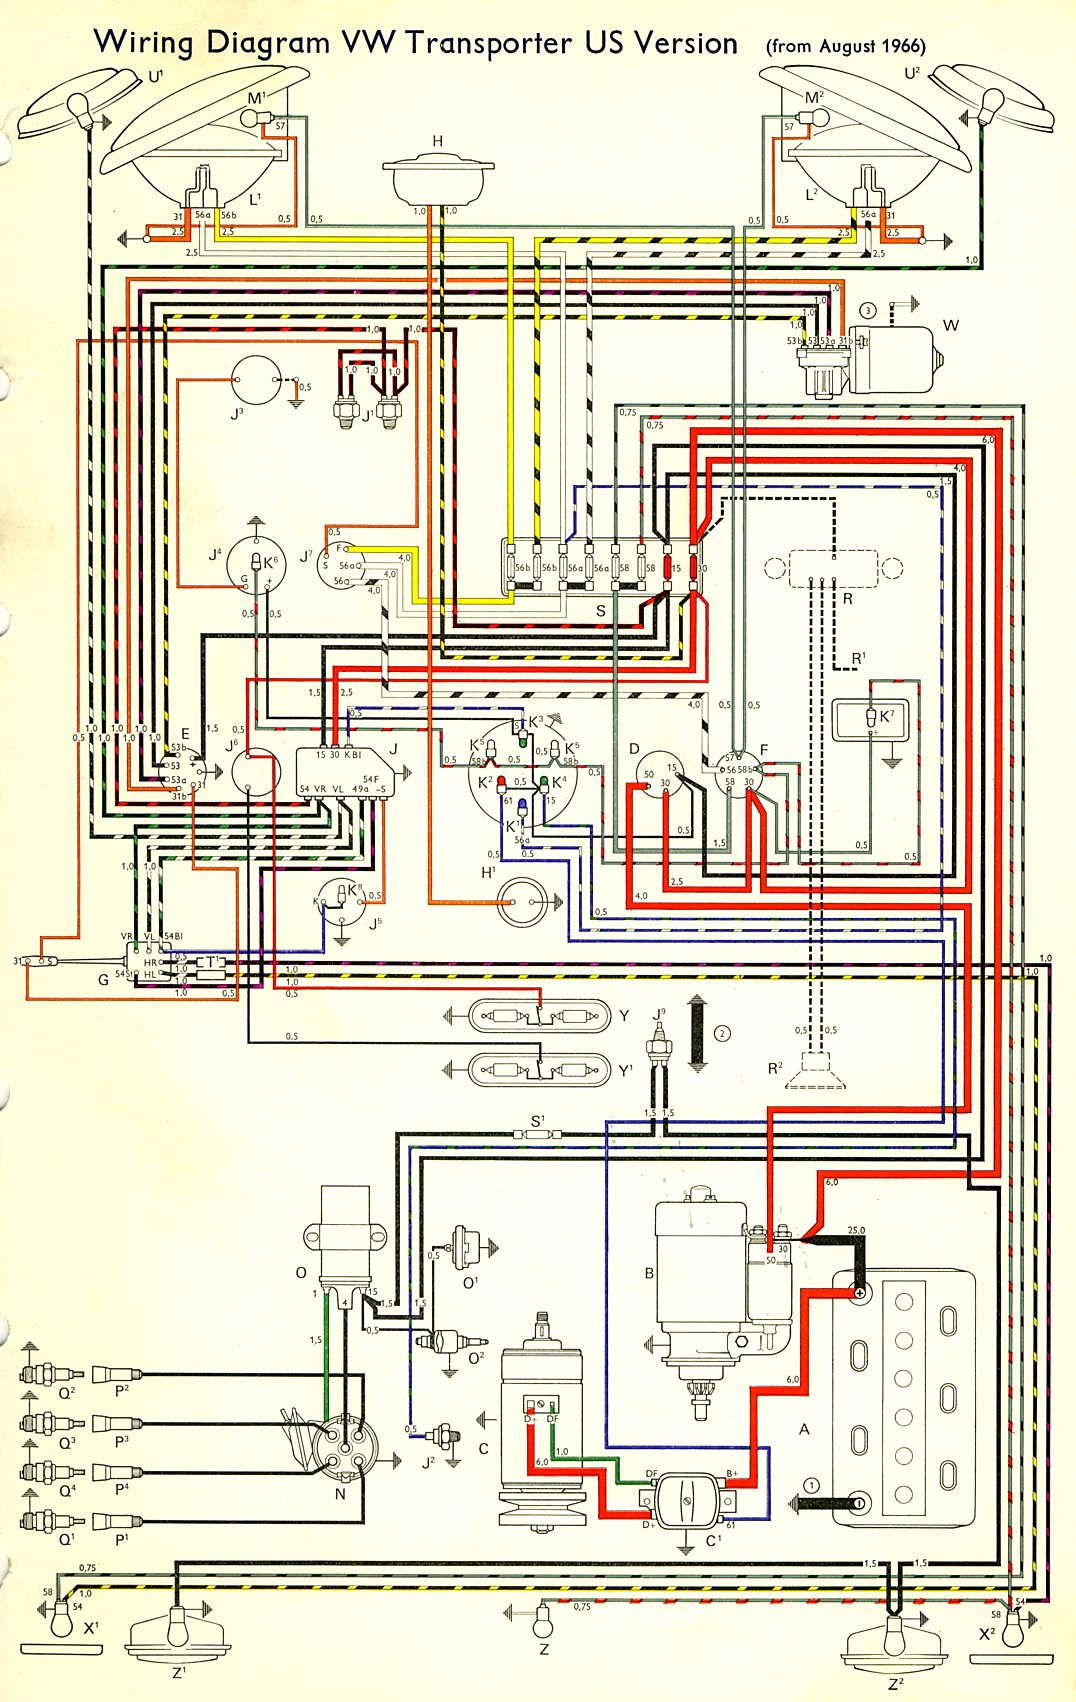 bus_67_USA 67 vw bus wiring harness 71 vw wiring harness \u2022 wiring diagrams Wiring Harness Diagram at fashall.co